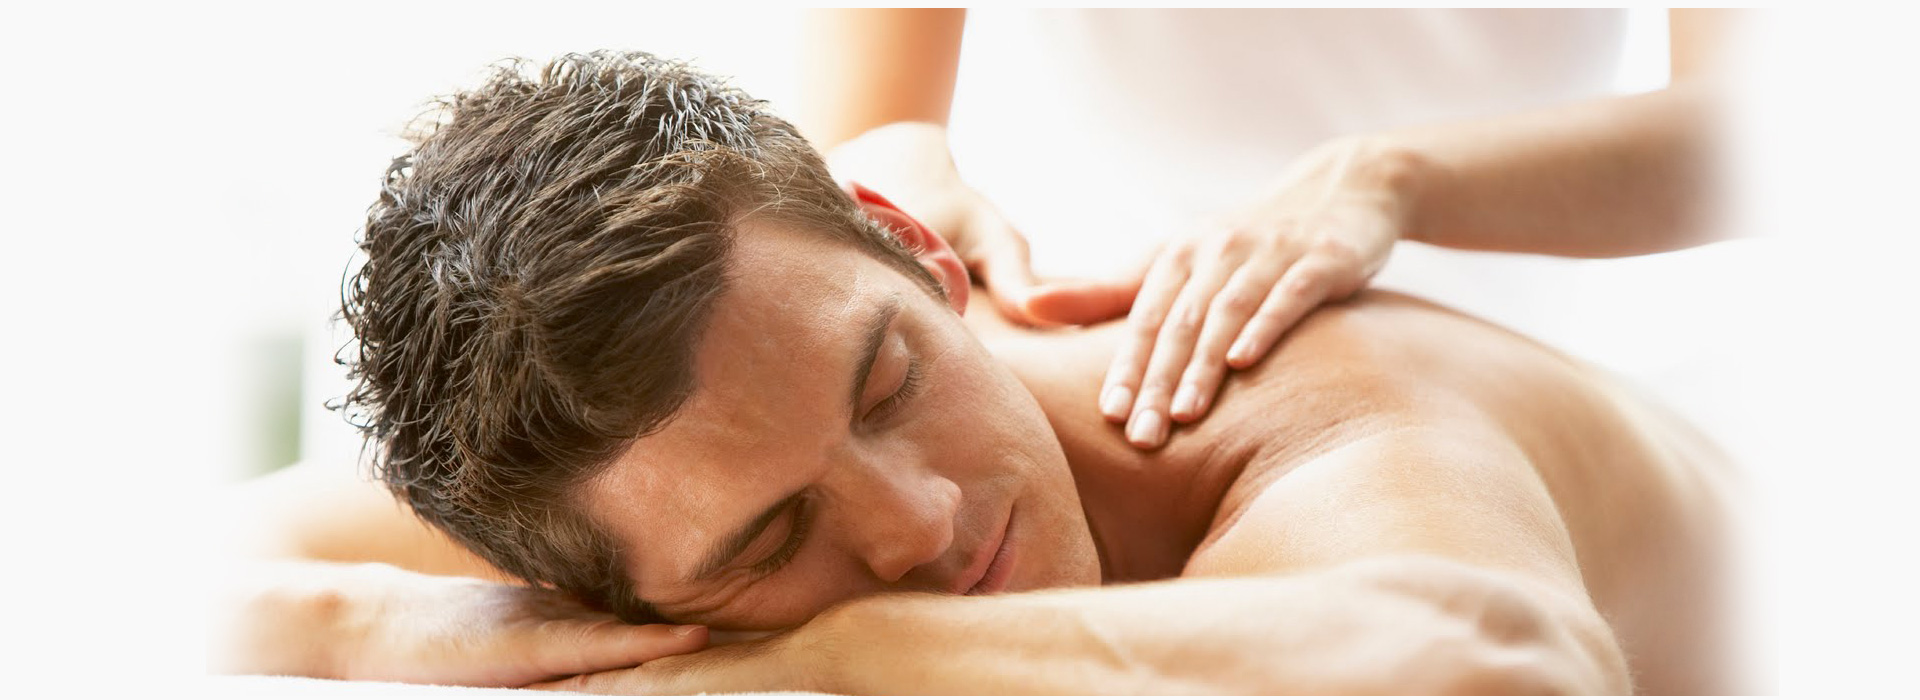 Tantric Massage different from Erotic Massage, differences between tantric and erotic massage,